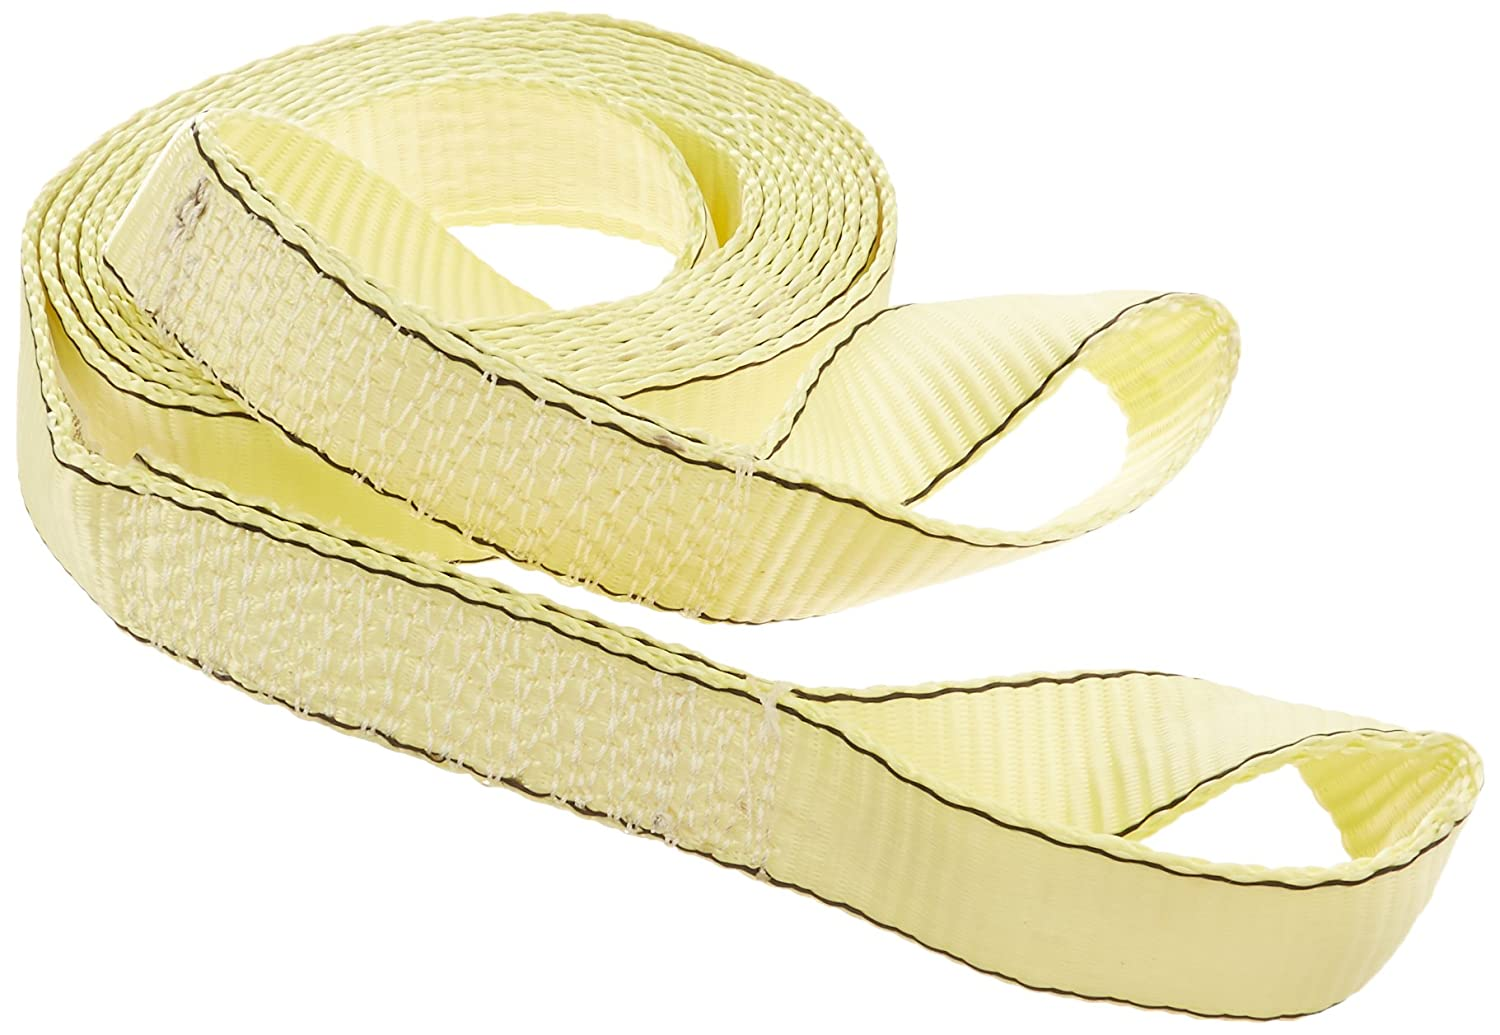 20 Yellow Tow Strap with Loop Ends 1 piece 1015200 Highland